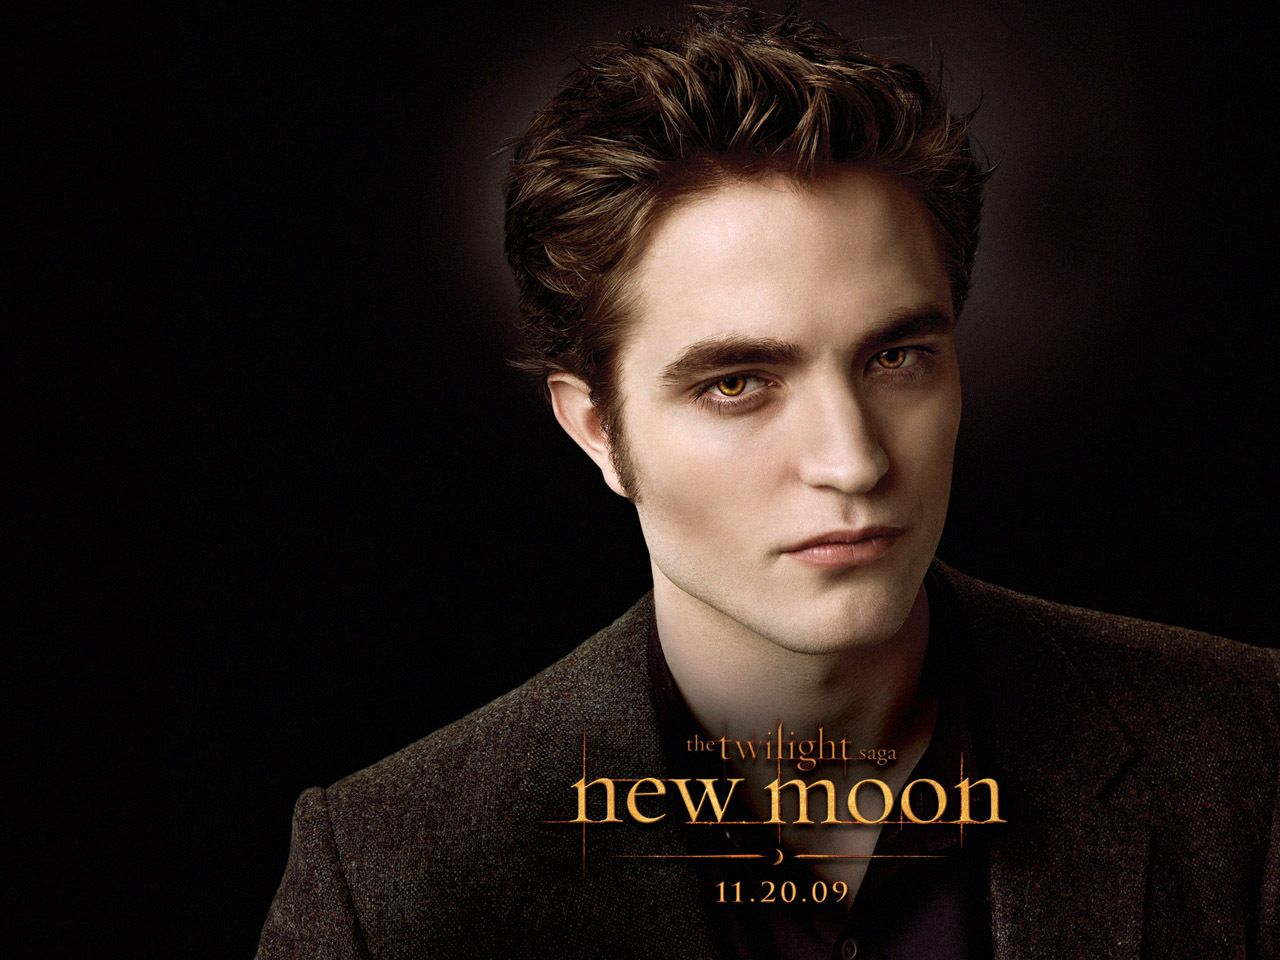 Wallpaper Of New Moon HD Wallpapers FullScreen For Fans Twilight Series I Know Theyre Old But Still Are Cool